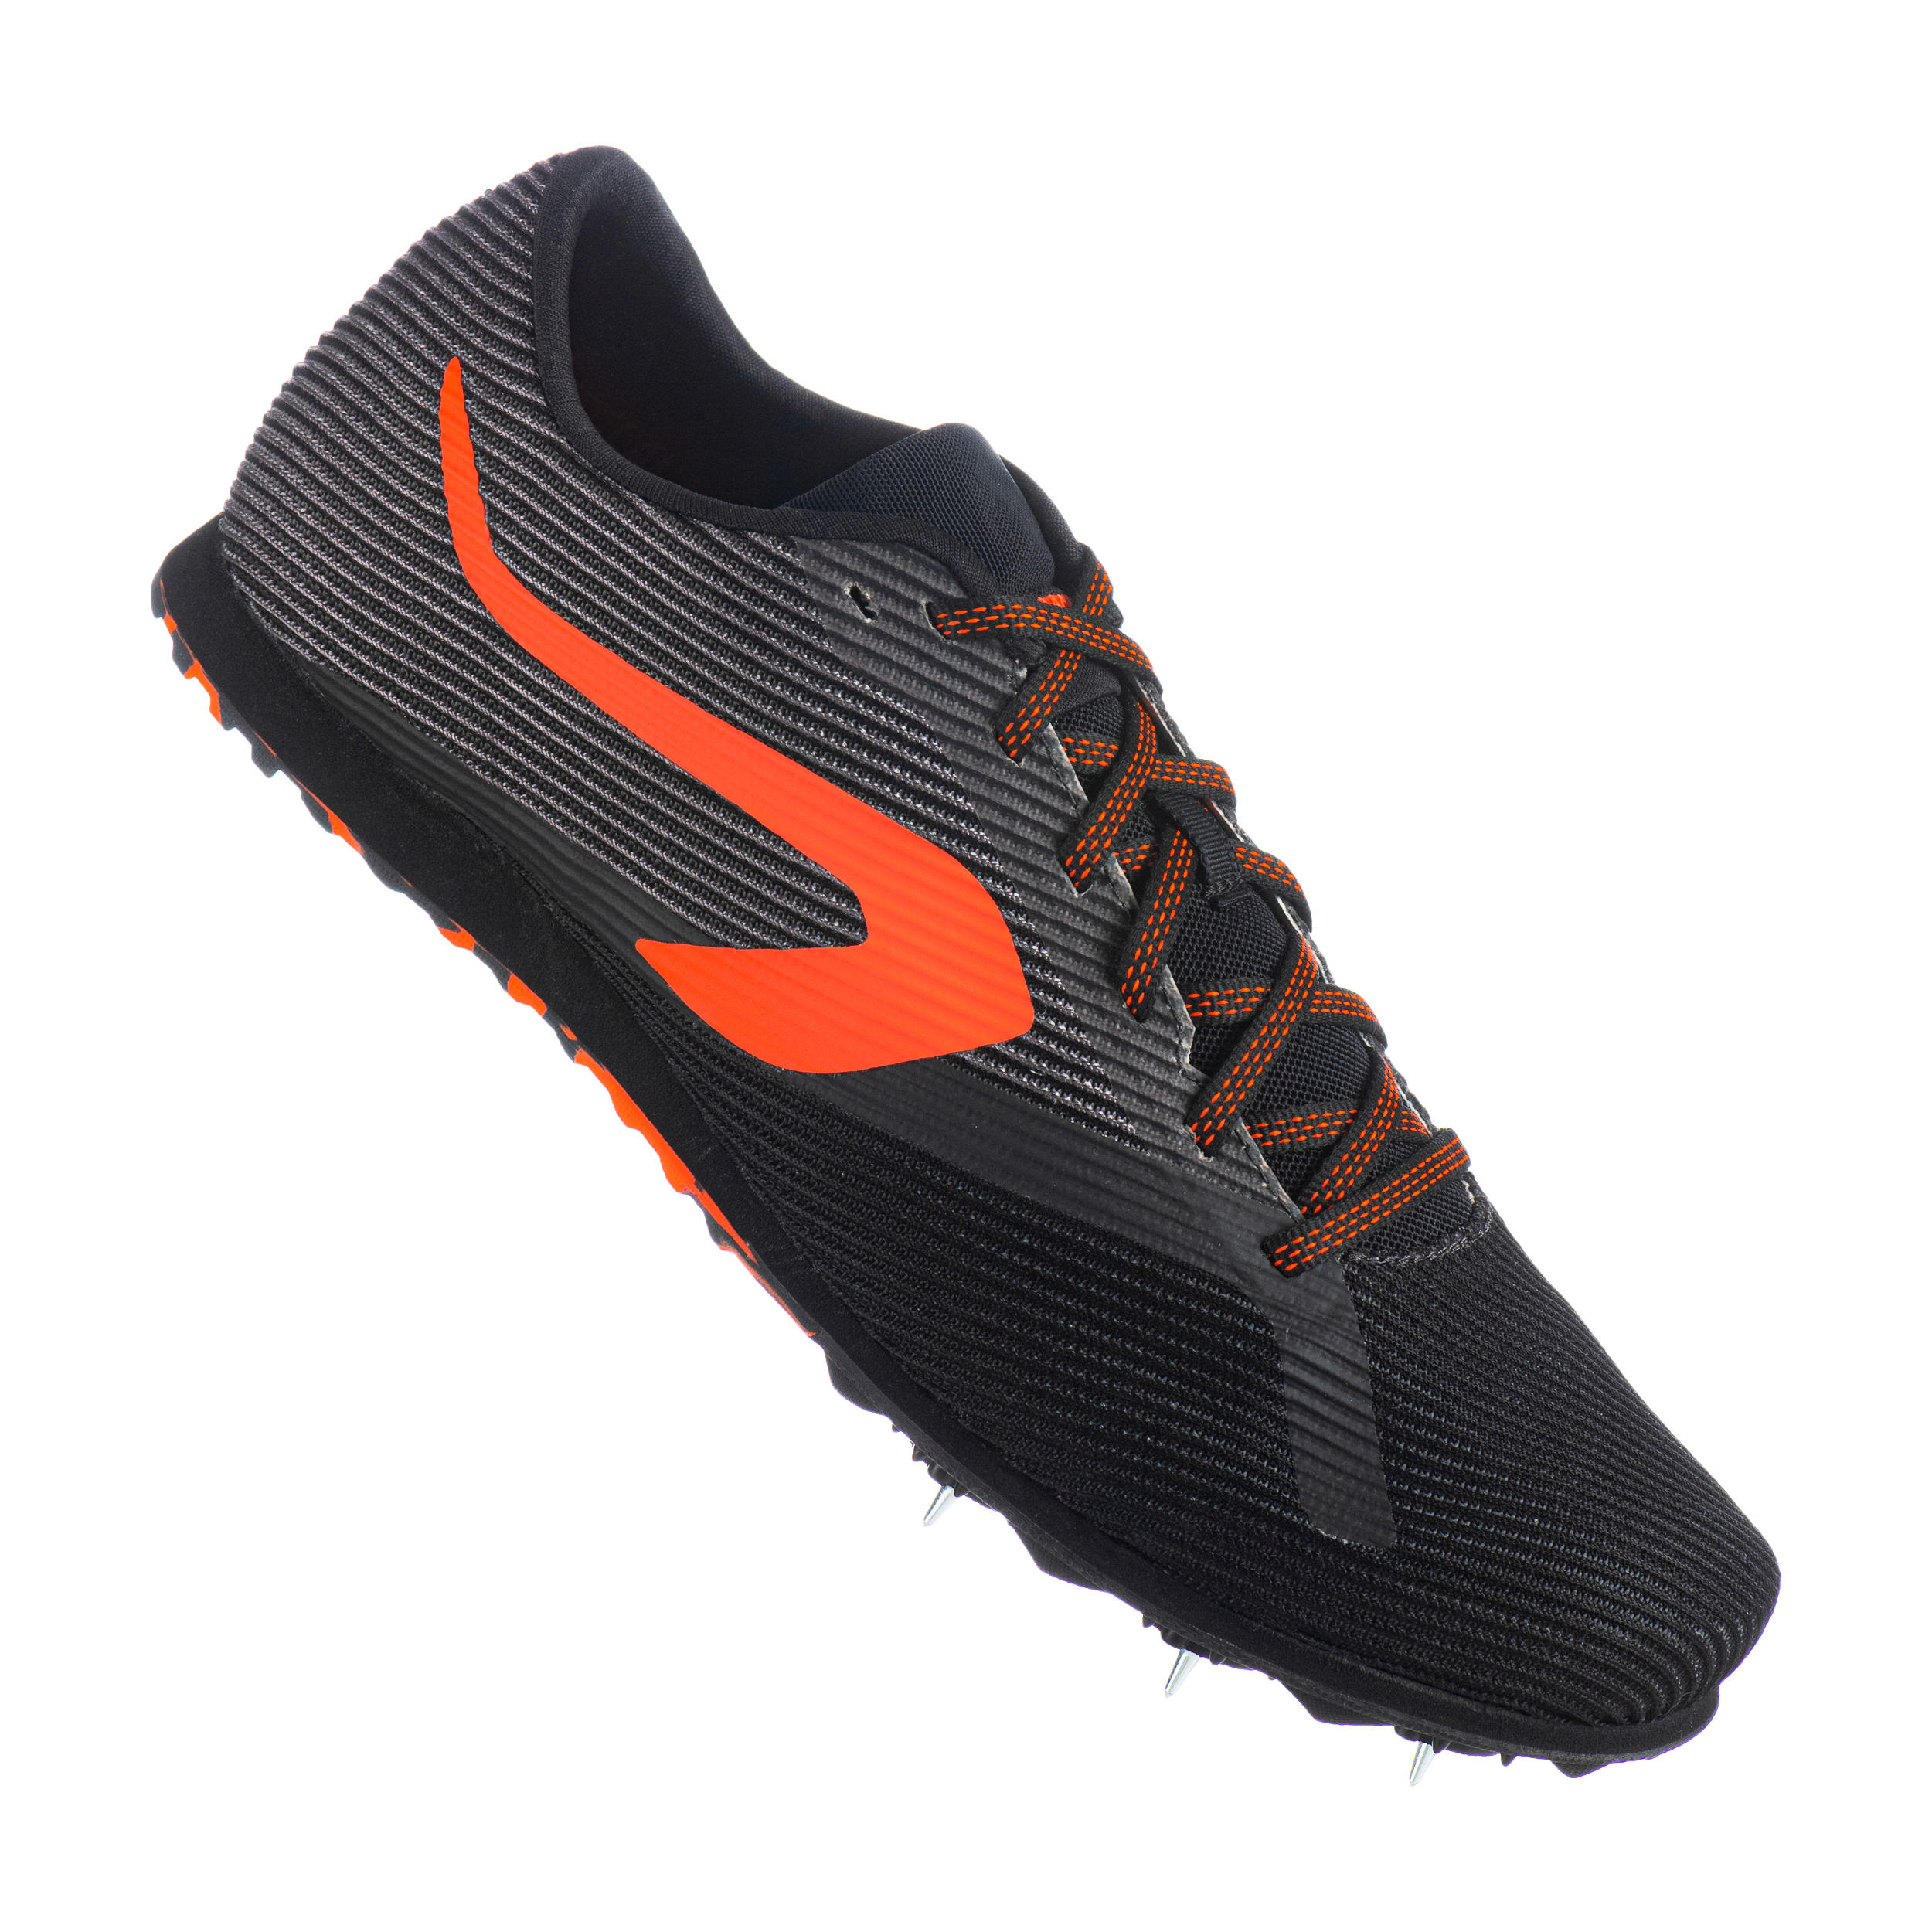 ATHLETICS CROSS-COUNTRY SHOES WITH